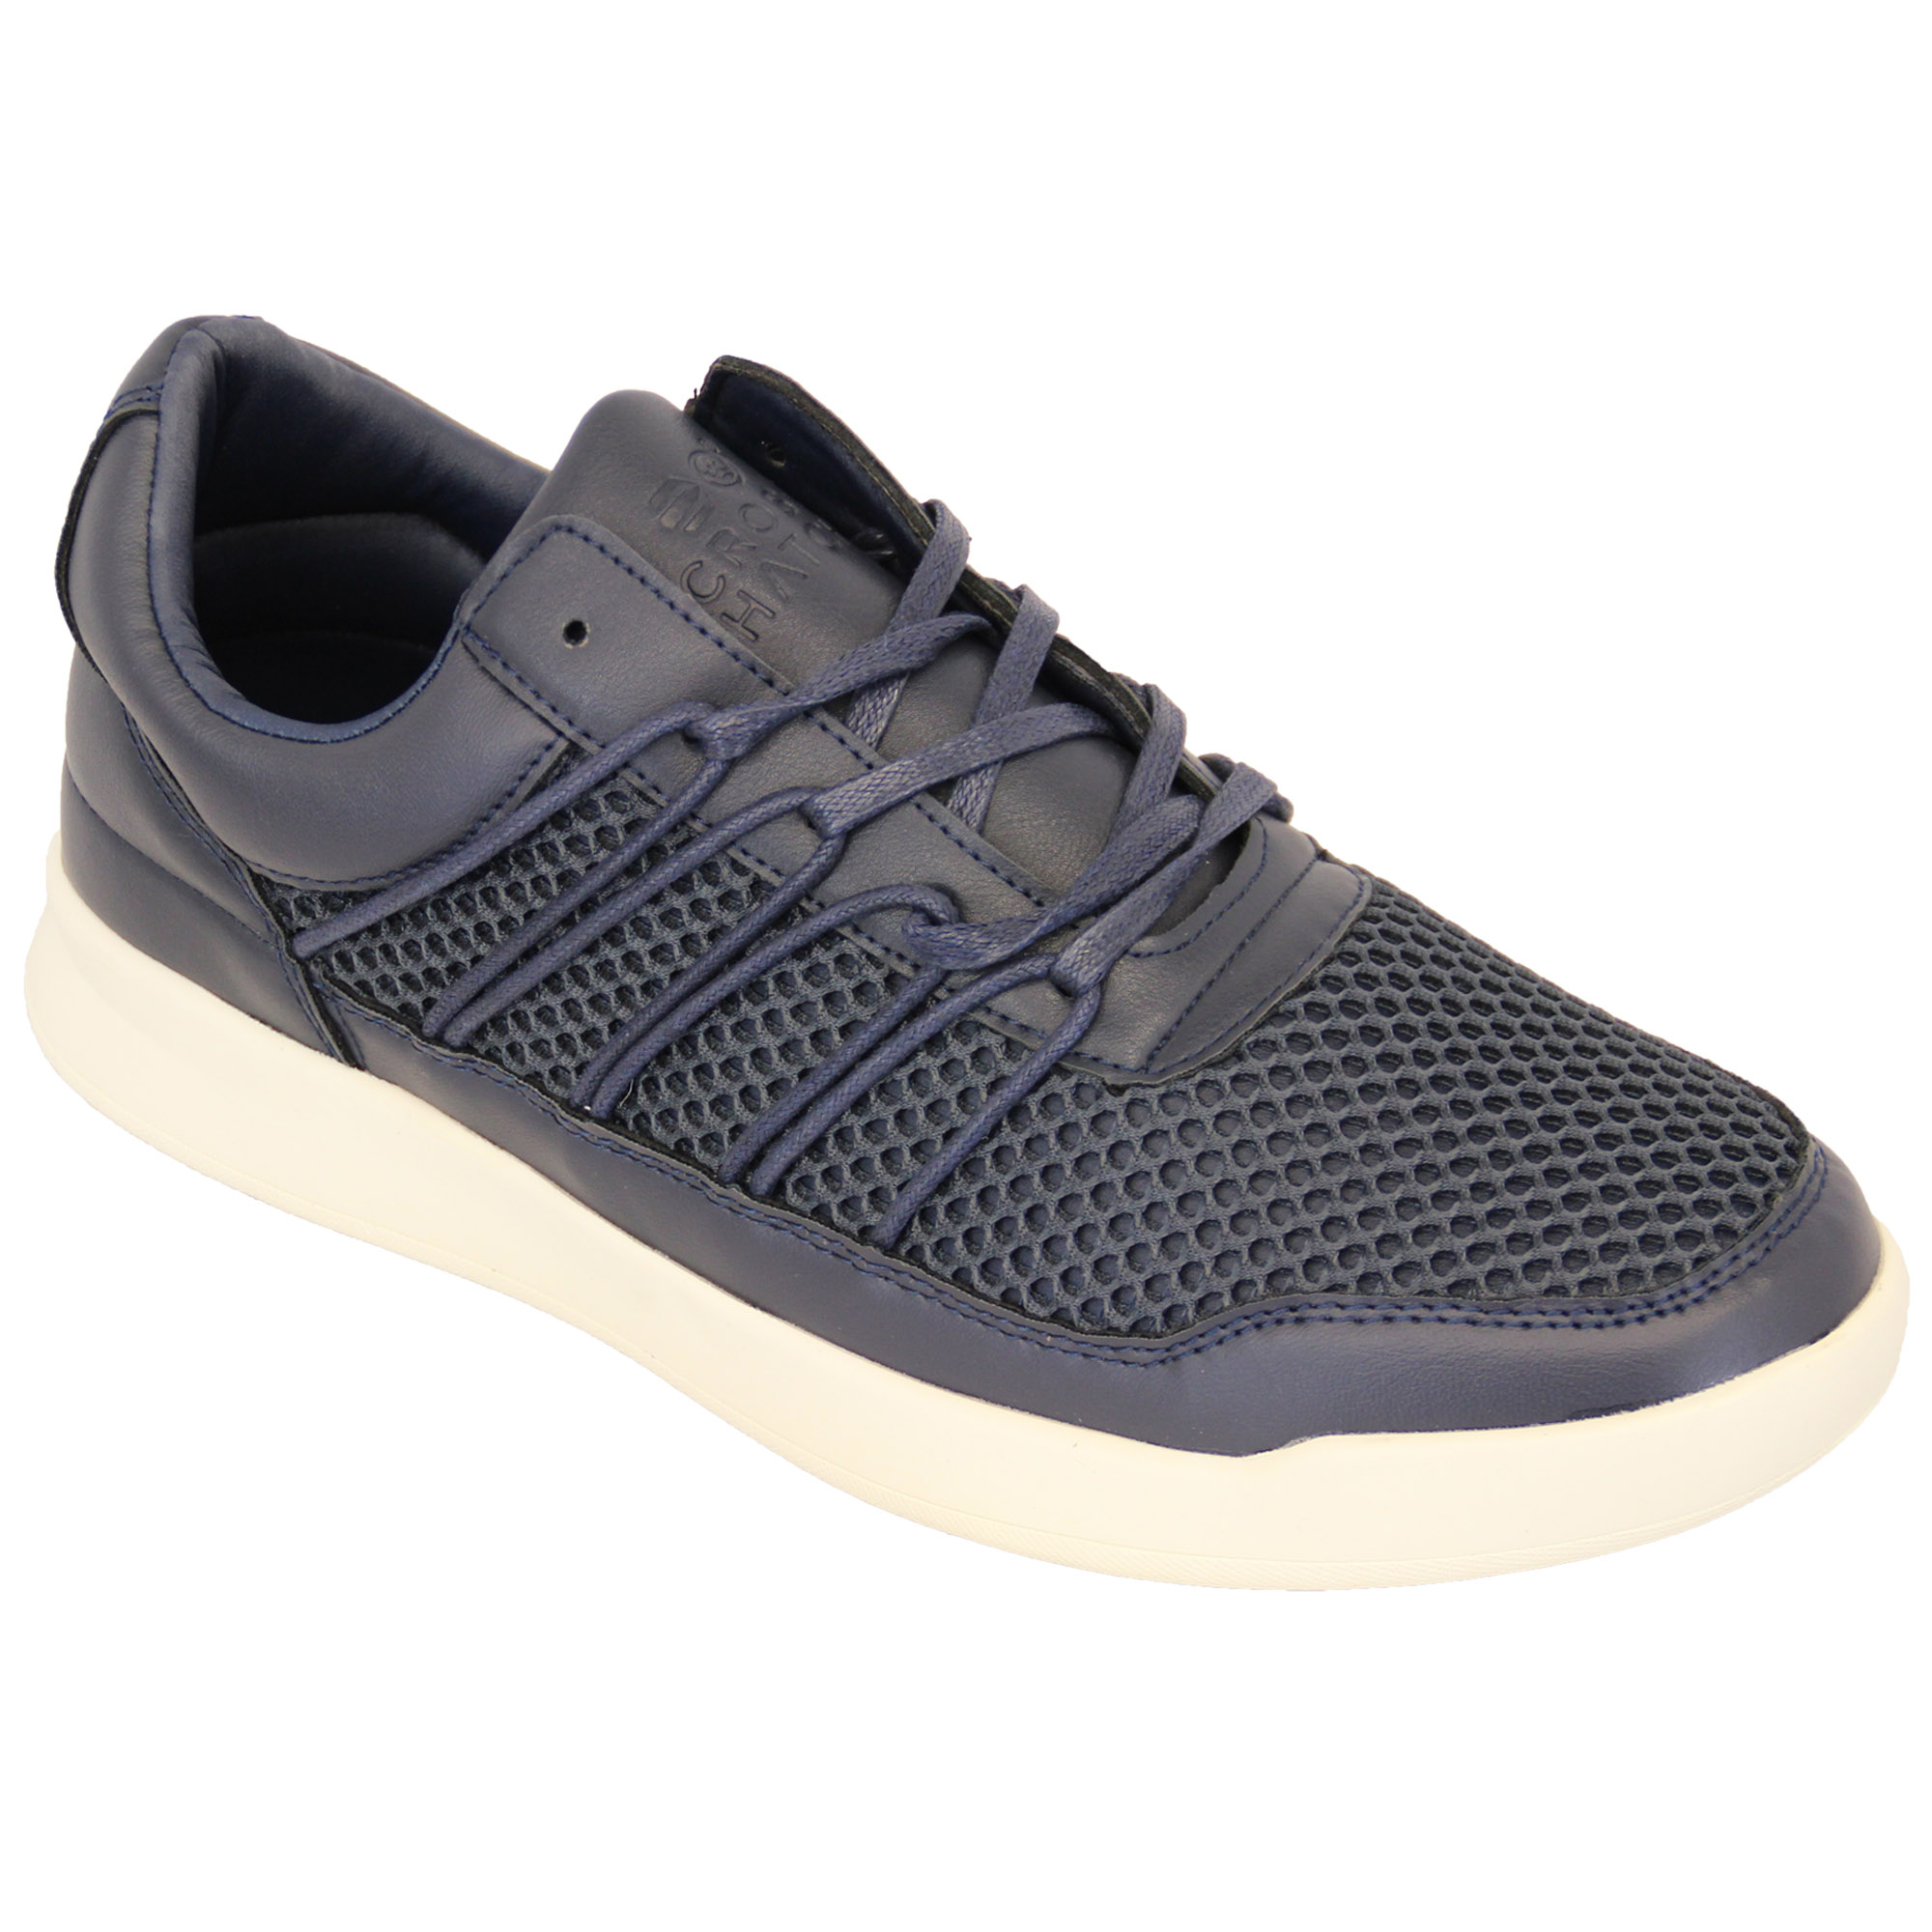 Mens-Trainers-Crosshatch-Jogging-Shoes-Lace-Up-Walking-Running-Sports-Gym-Mesh thumbnail 9